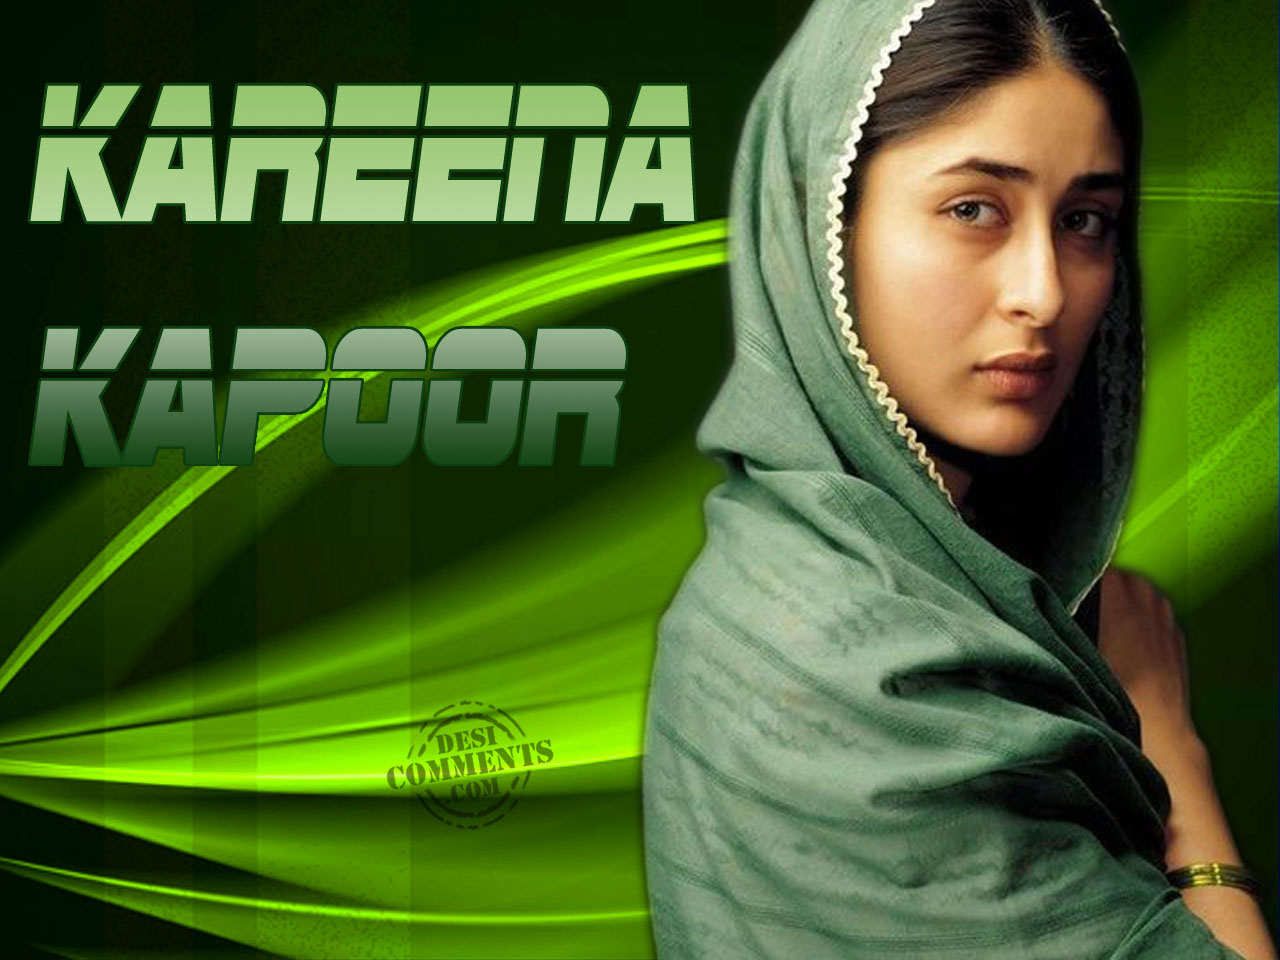 http://www.desicomments.com/wallpapers/bollywood/kareena_kapoor/Kareena-Kapoor-Wallpapers-15.jpg